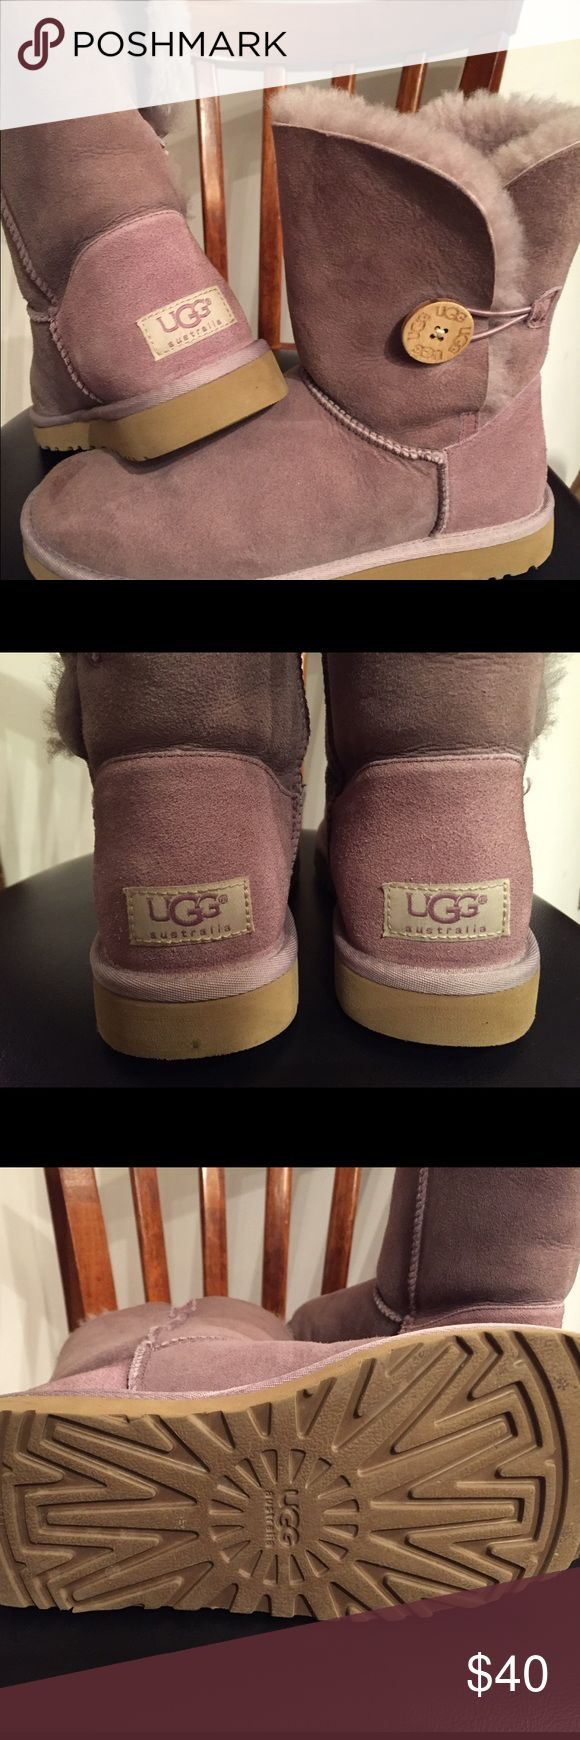 Ugg Bailey Button Boots in dusty mauve Love these short UGGS! Bailey Buttons in a great dusty mauve color that goes with so many looks!  Bought these at Nordy's in 2009 and wore them sparingly.  These are virtually vintage and in great condition! For UGG experts: these boots do not carry the hologram label because UGG didn't start using this tag until mid 2010. I am half-Australian by birth and stake my Aussie reputation on the quality and authenticity of these boots! UGG Shoes Winter & Rain…